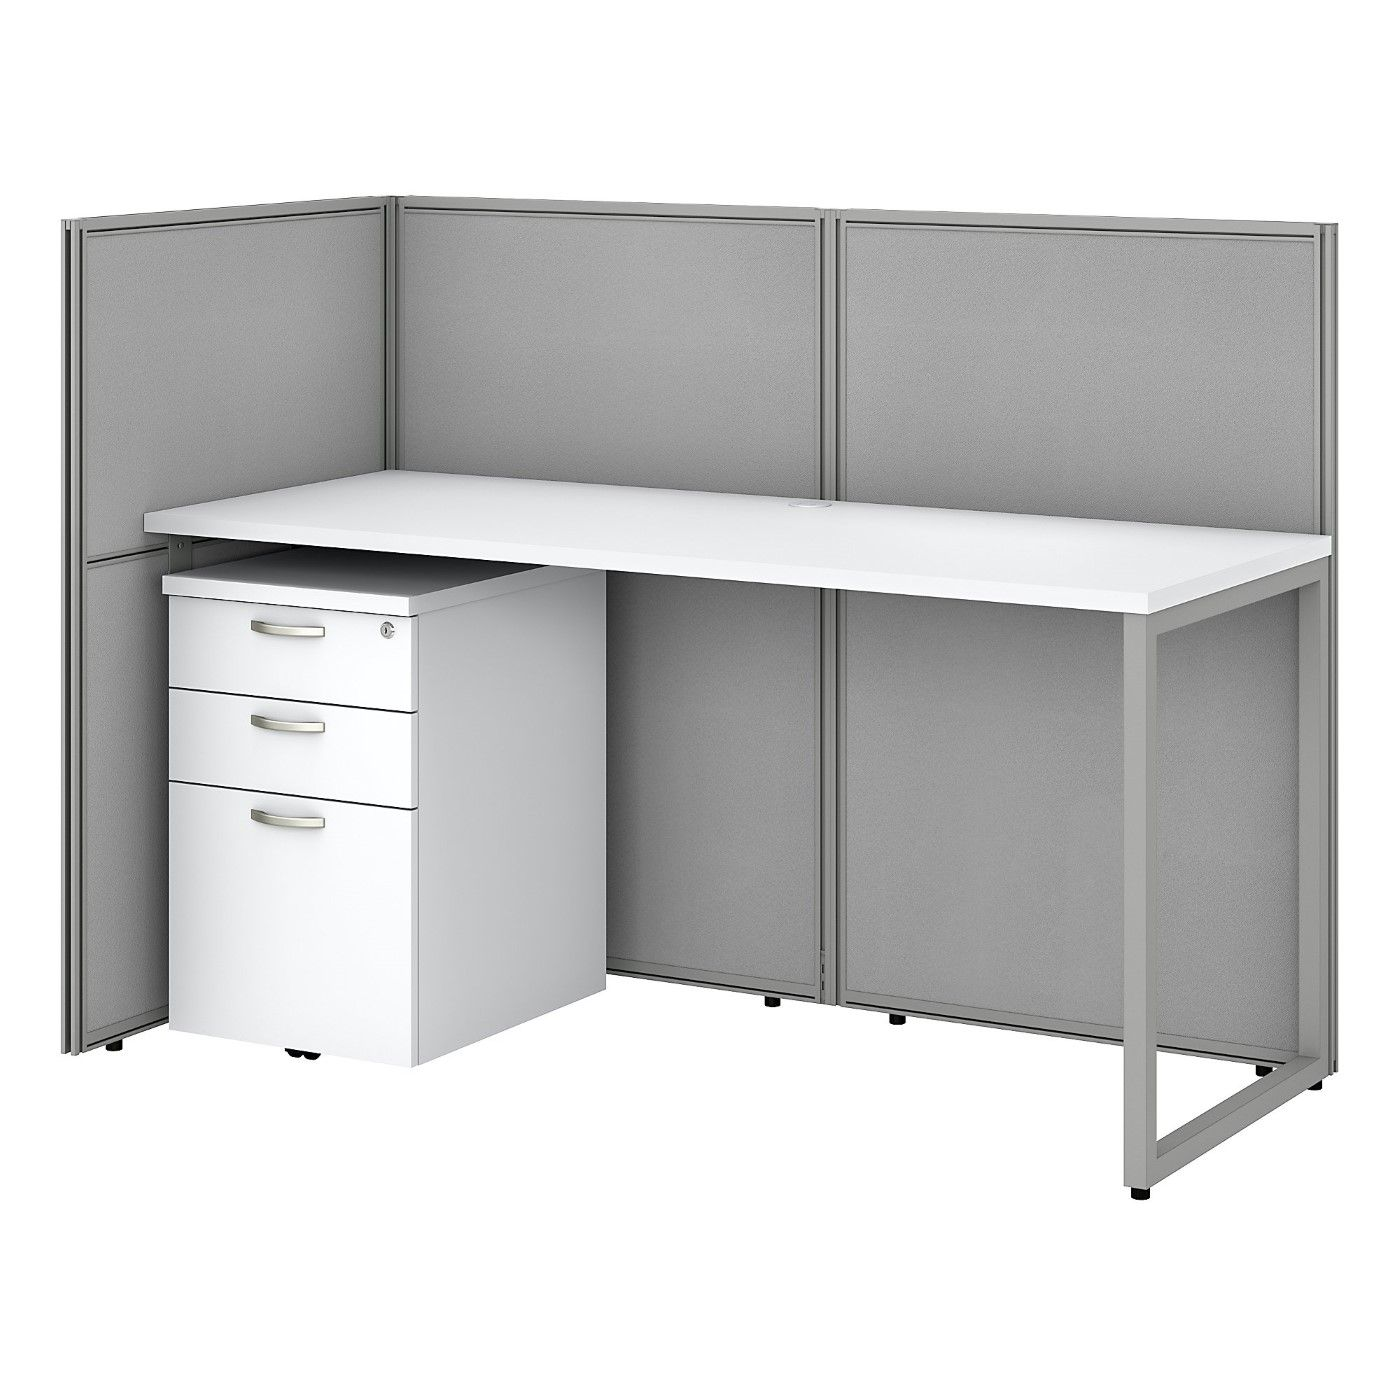 BUSH BUSINESS FURNITURE EASY OFFICE 60W CUBICLE DESK WITH FILE CABINET AND 45H OPEN PANELS WORKSTATION. FREE SHIPPING SALE DEDUCT 10% MORE ENTER '10percent' IN COUPON CODE BOX WHILE CHECKING OUT. ENDS 5-31-20.